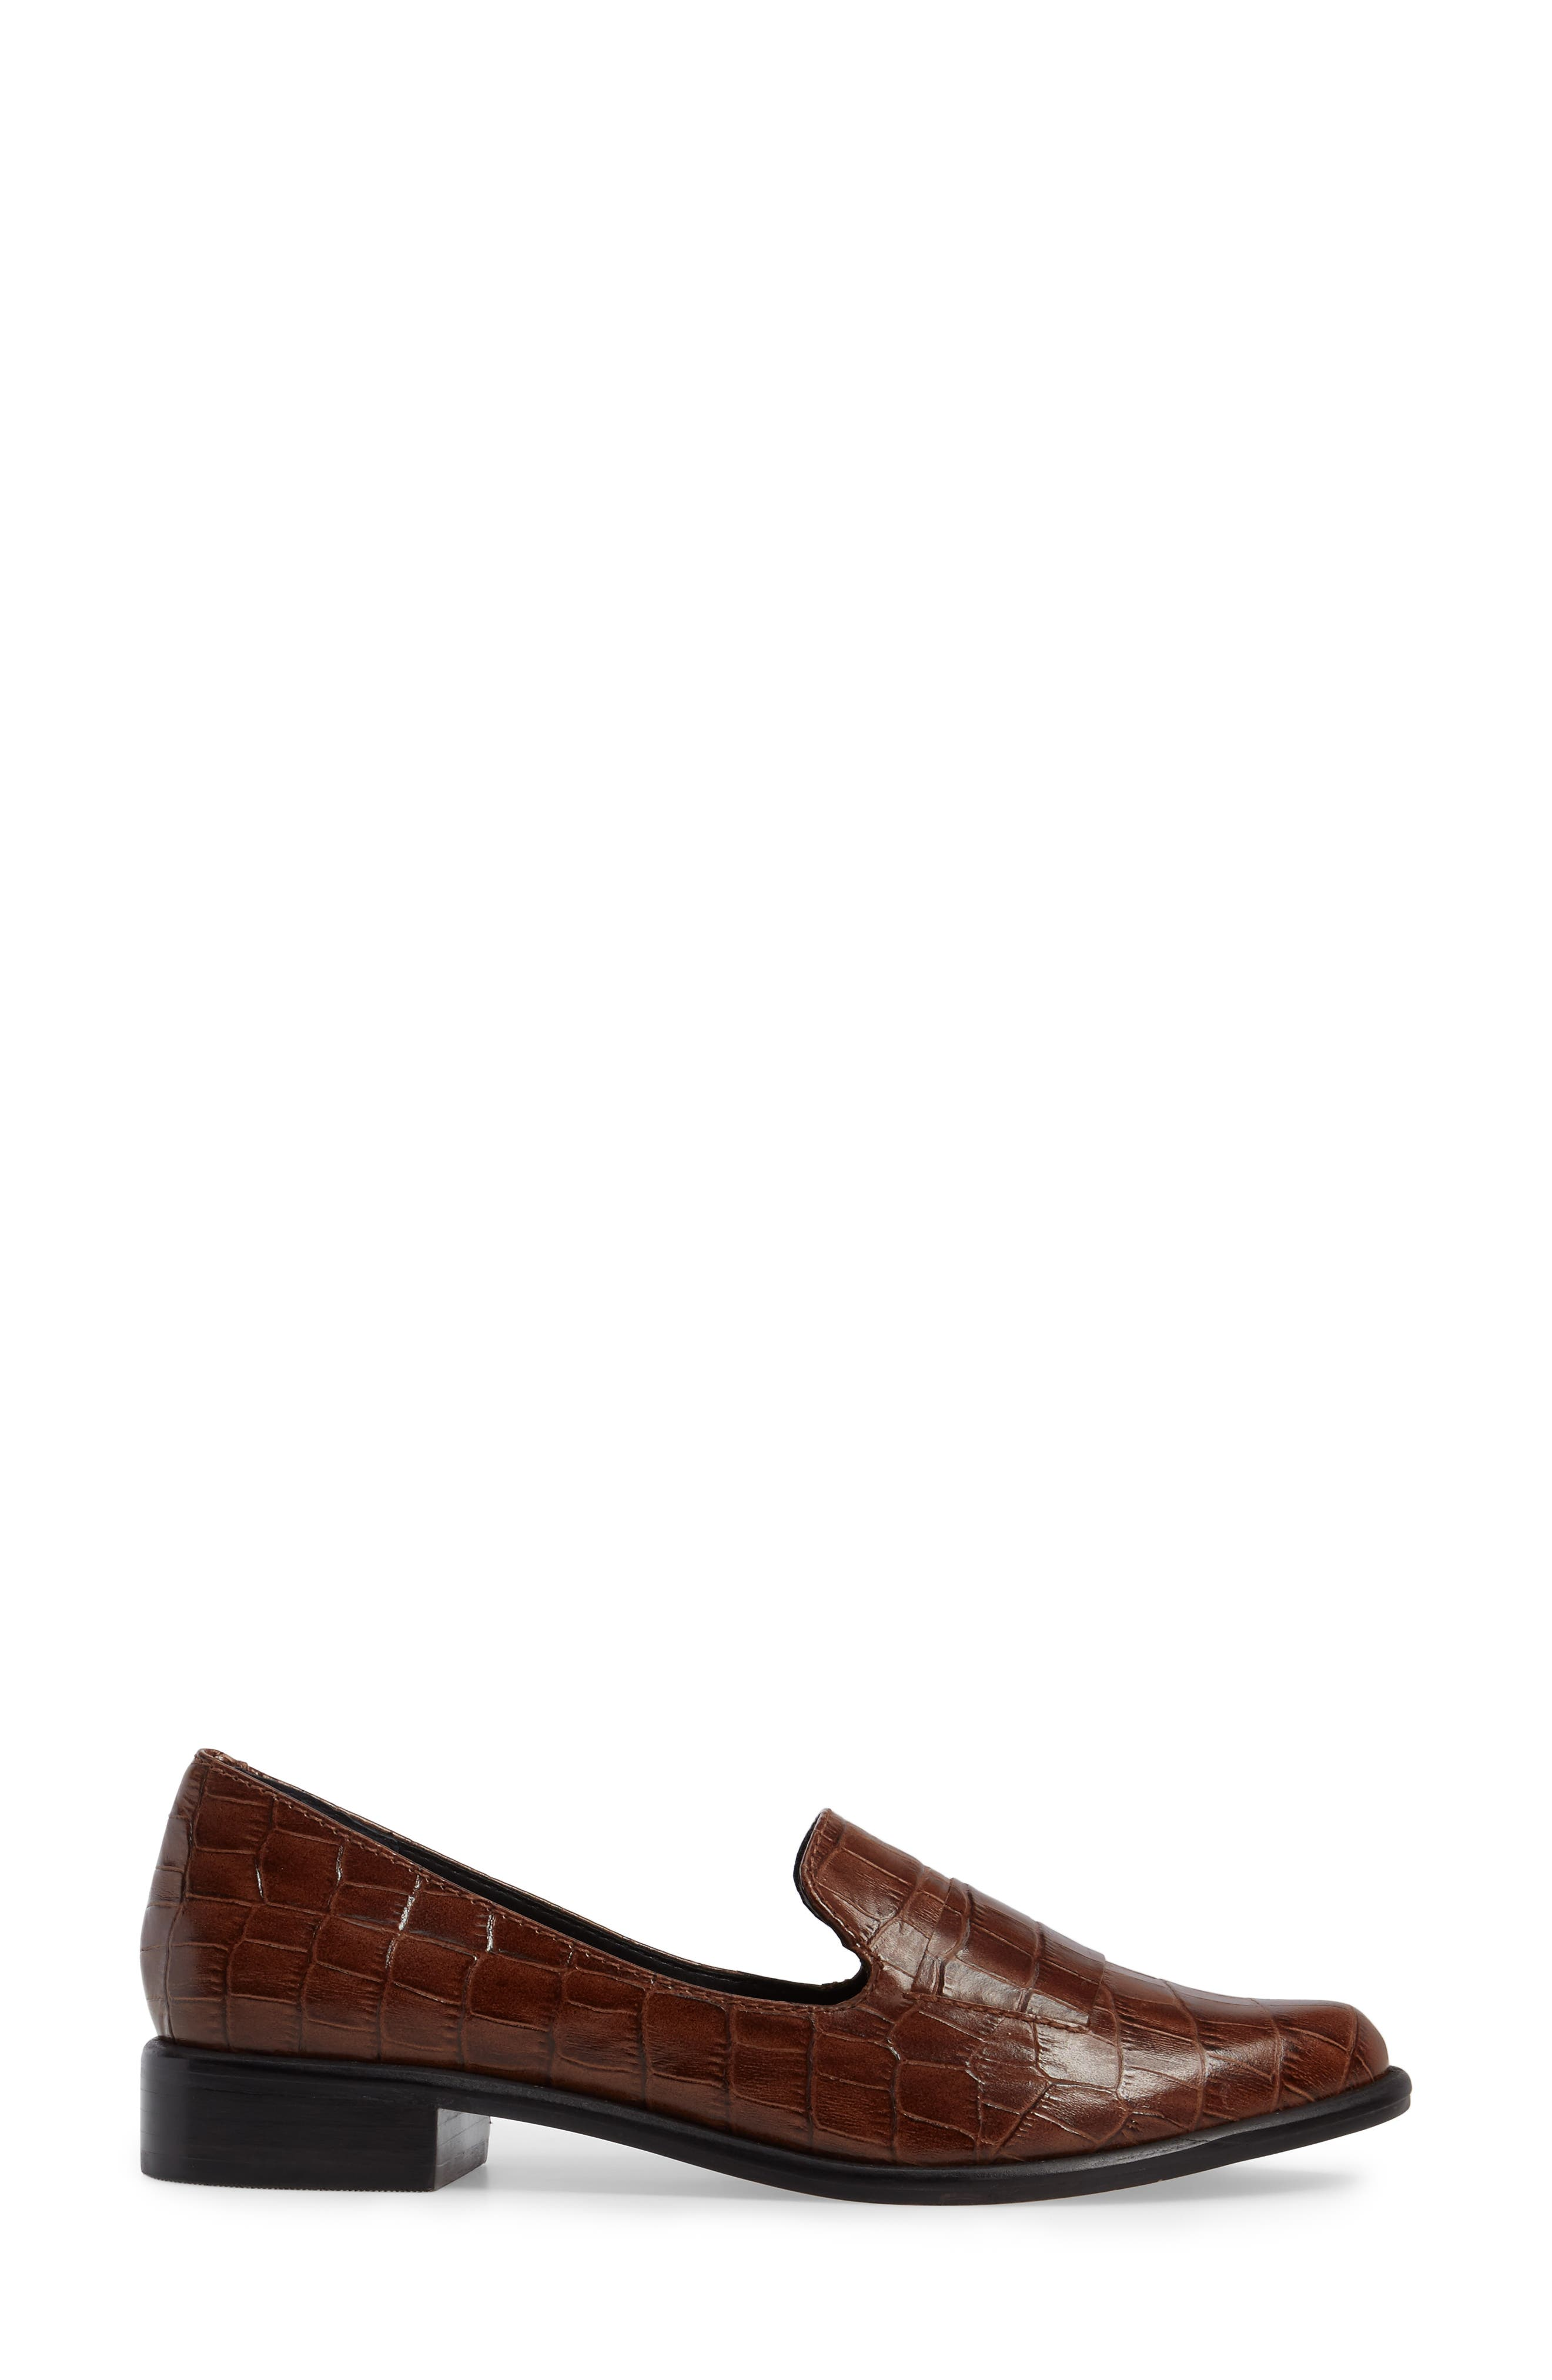 M4D3 'Ocean' Flat Loafer,                             Alternate thumbnail 3, color,                             Whiskey Croc Leather